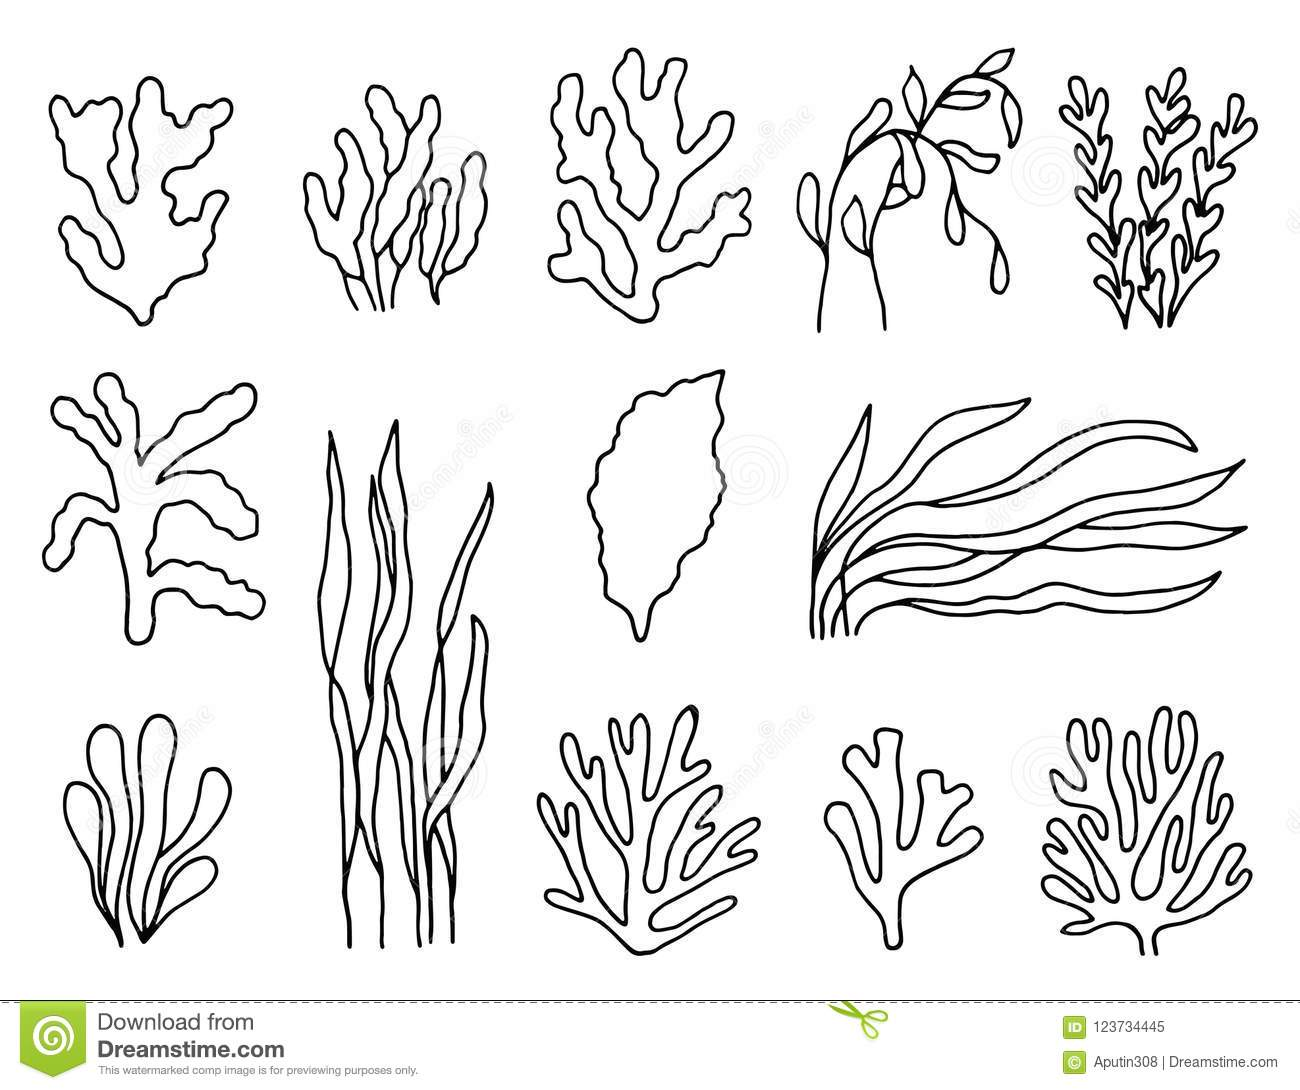 Seaweed Outline In Isolation Linear Drawing A Set Of